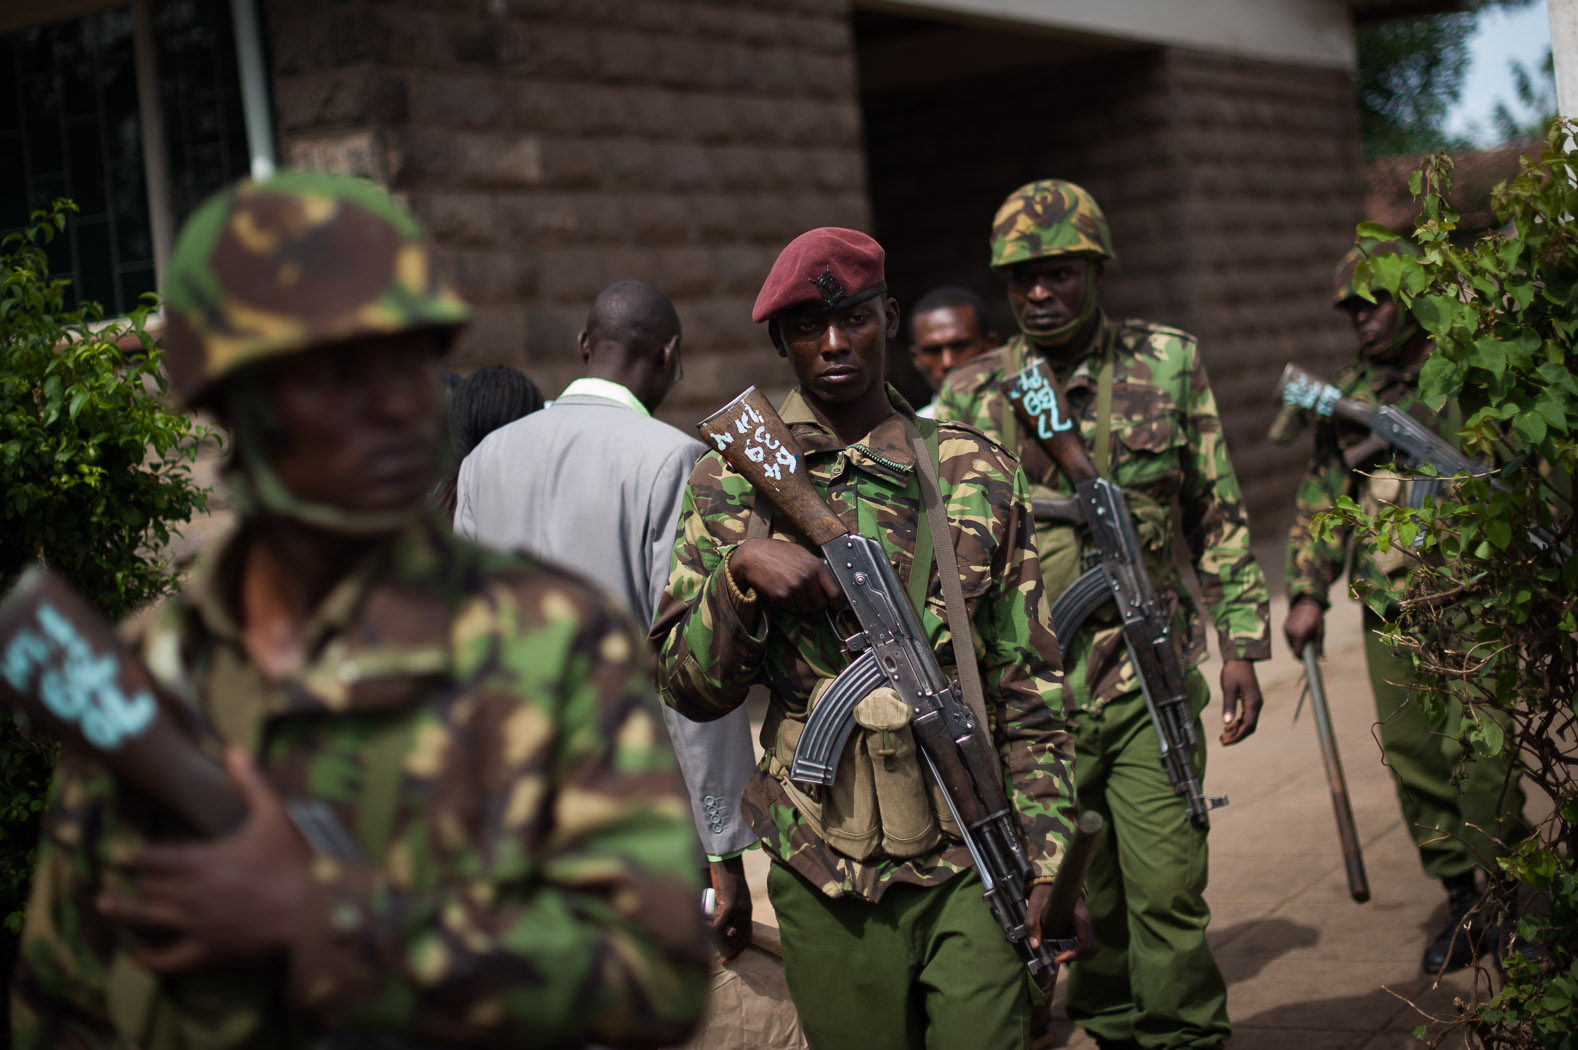 Around the country, a strong security presence was felt, with armed police and security forces patrolling trouble spots, and guarding voting and tallying centres.